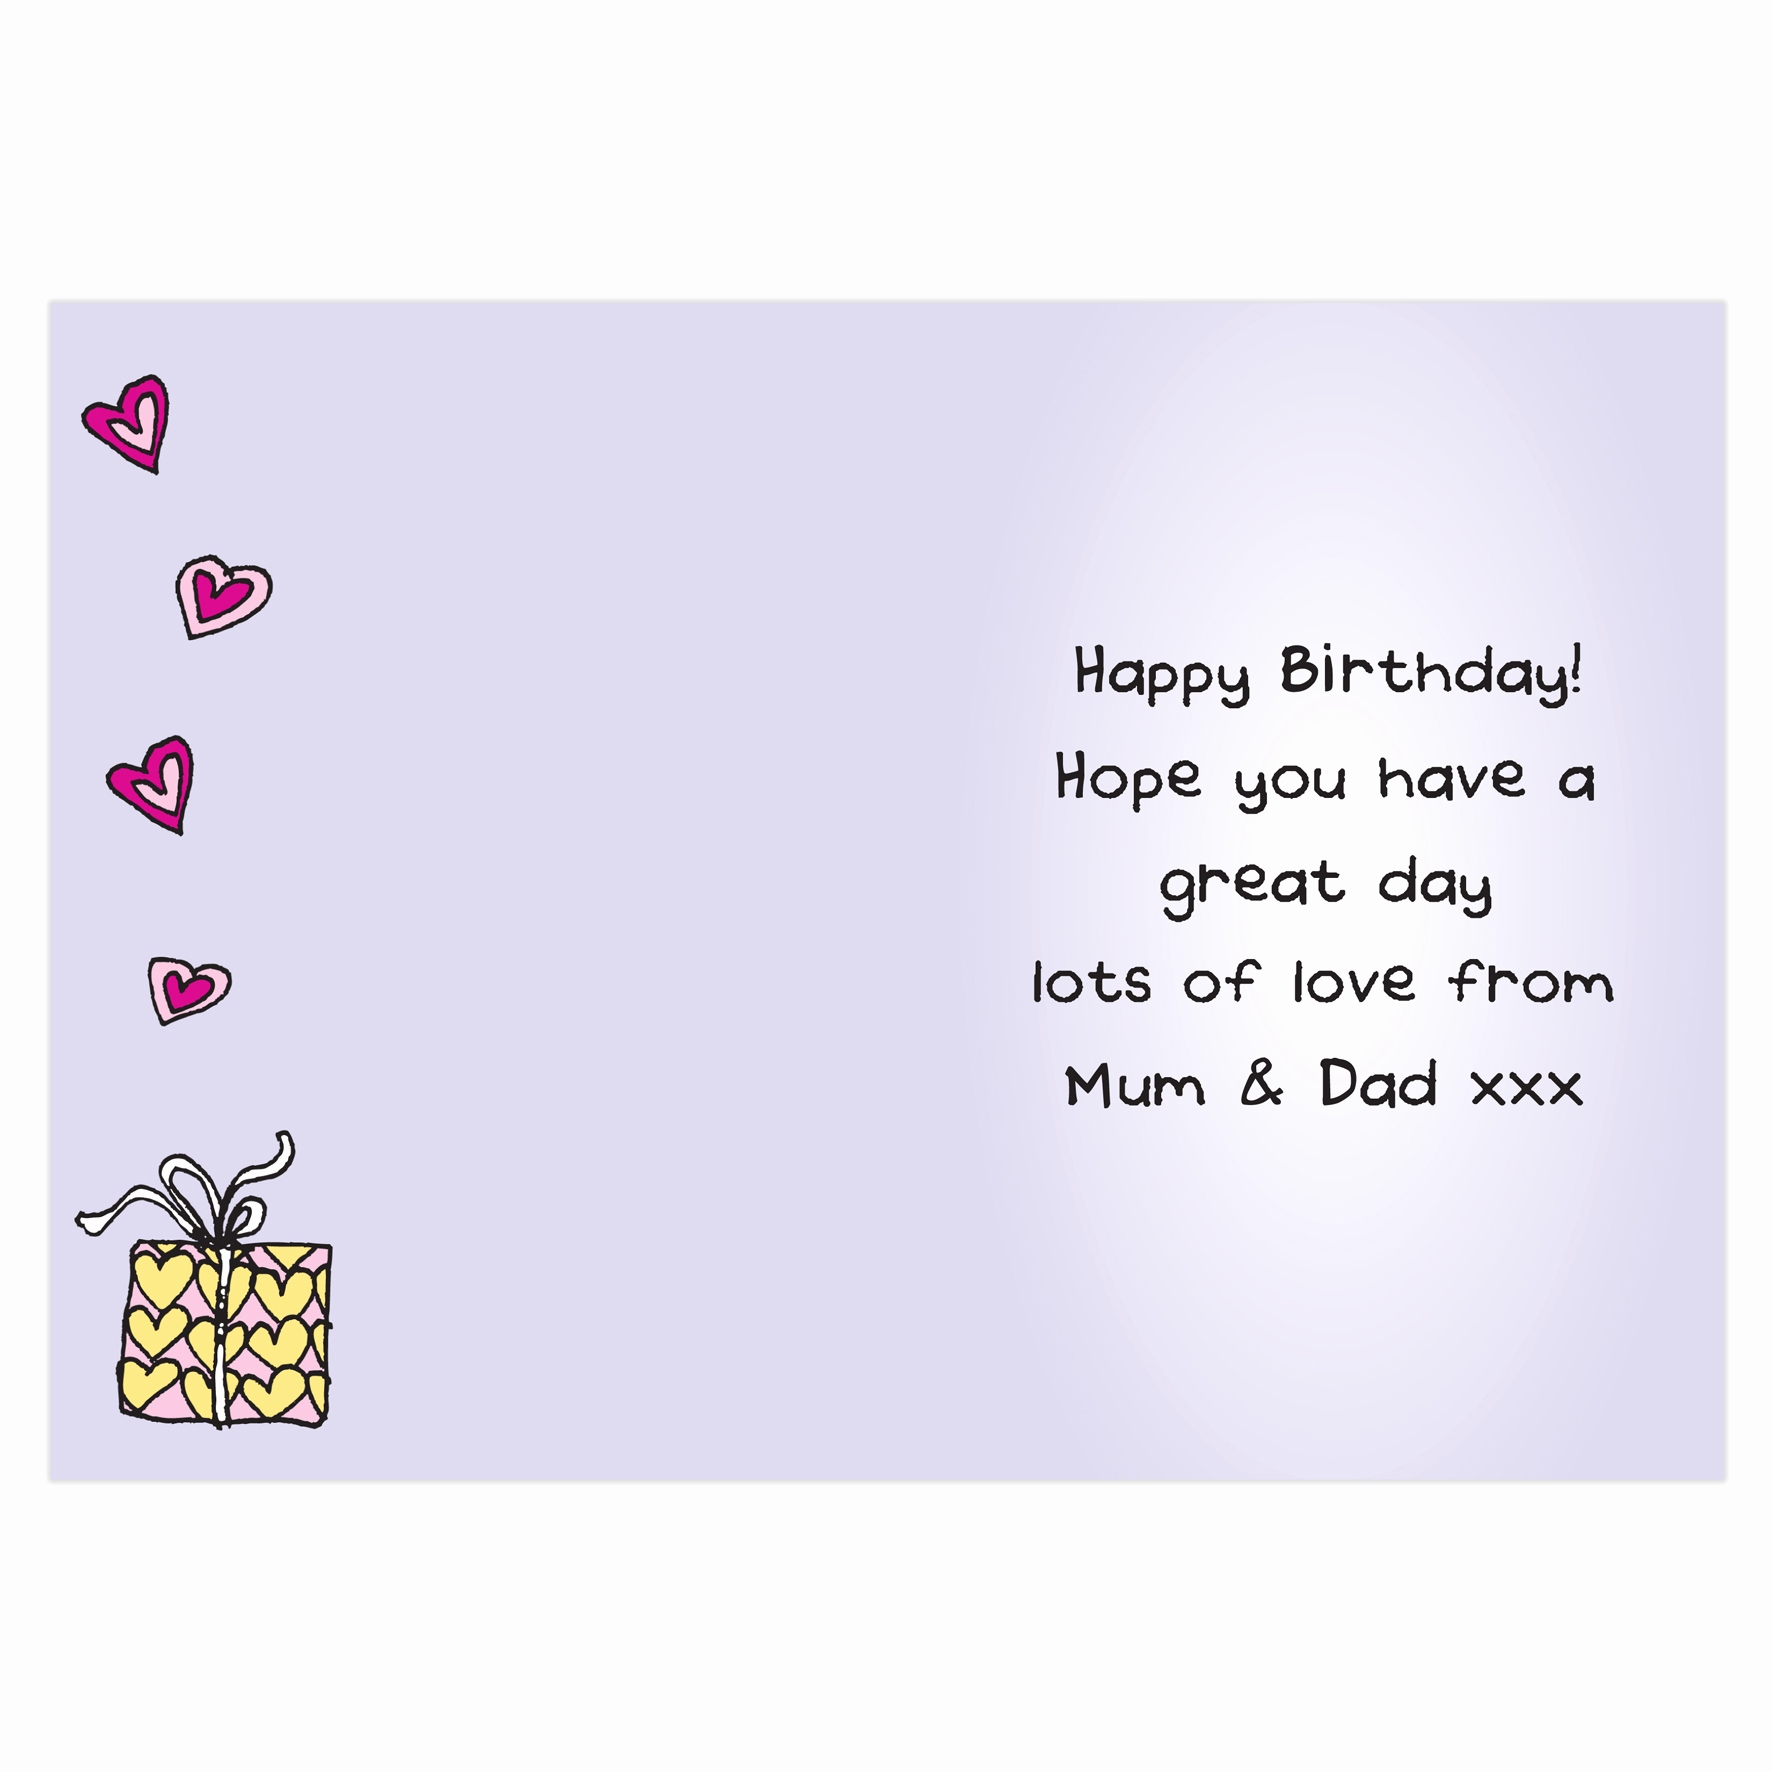 funny 25th birthday card messages ; 25th-birthday-card-messages-elegant-birthday-card-sayings-girlfriend-birthday-snydle-funny-boyfriend-of-25th-birthday-card-messages